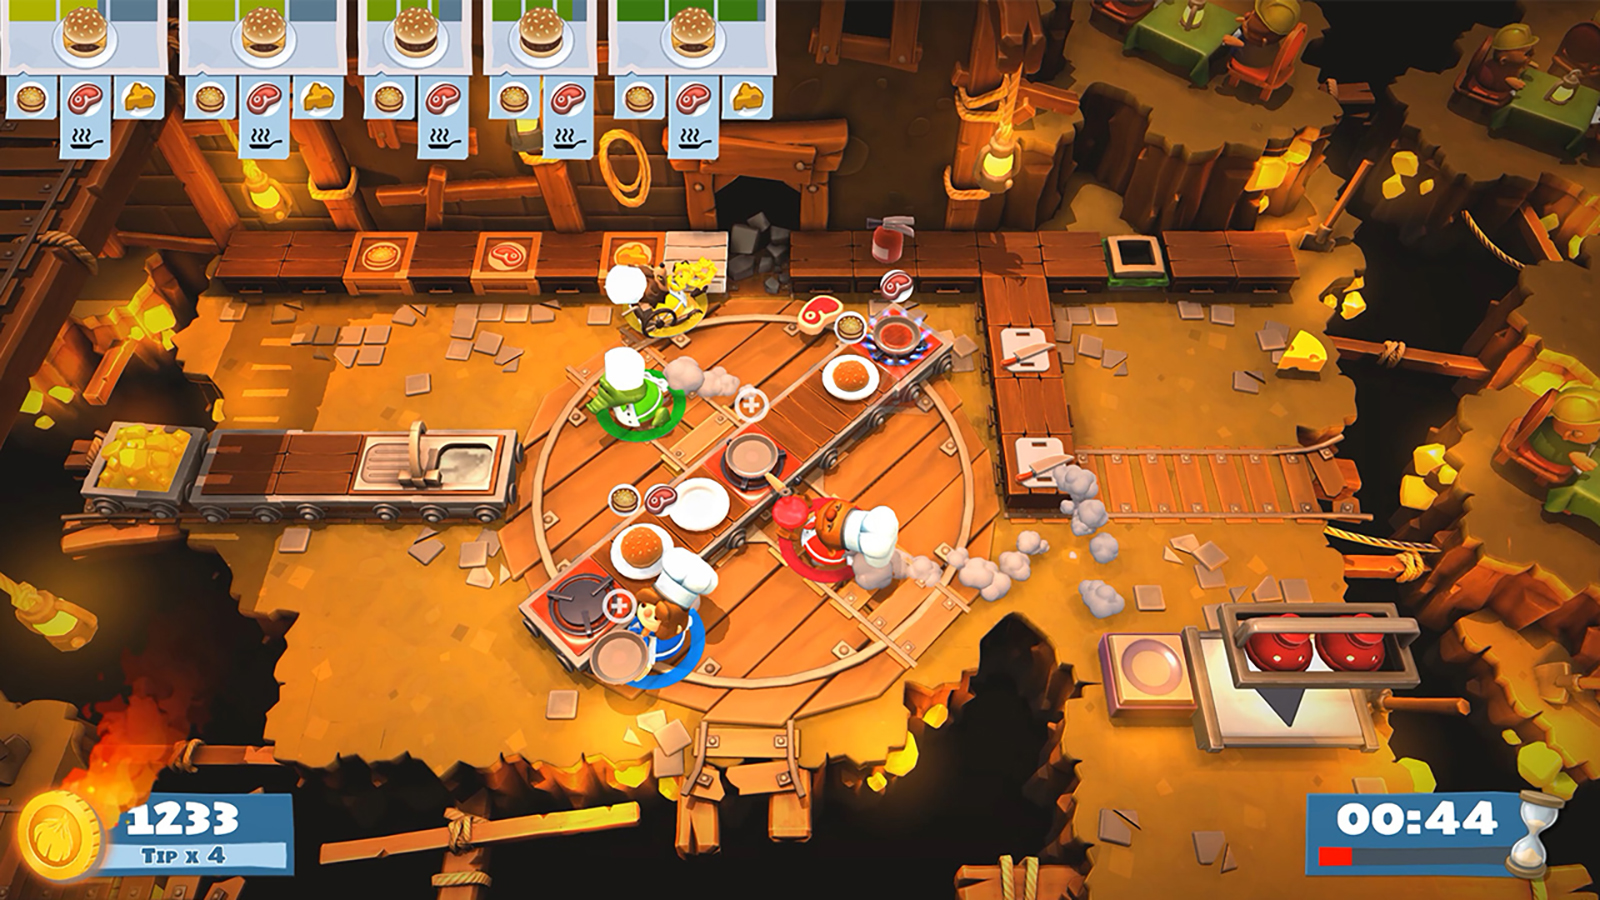 'Overcooked 2' for Switch will be free to play for a week